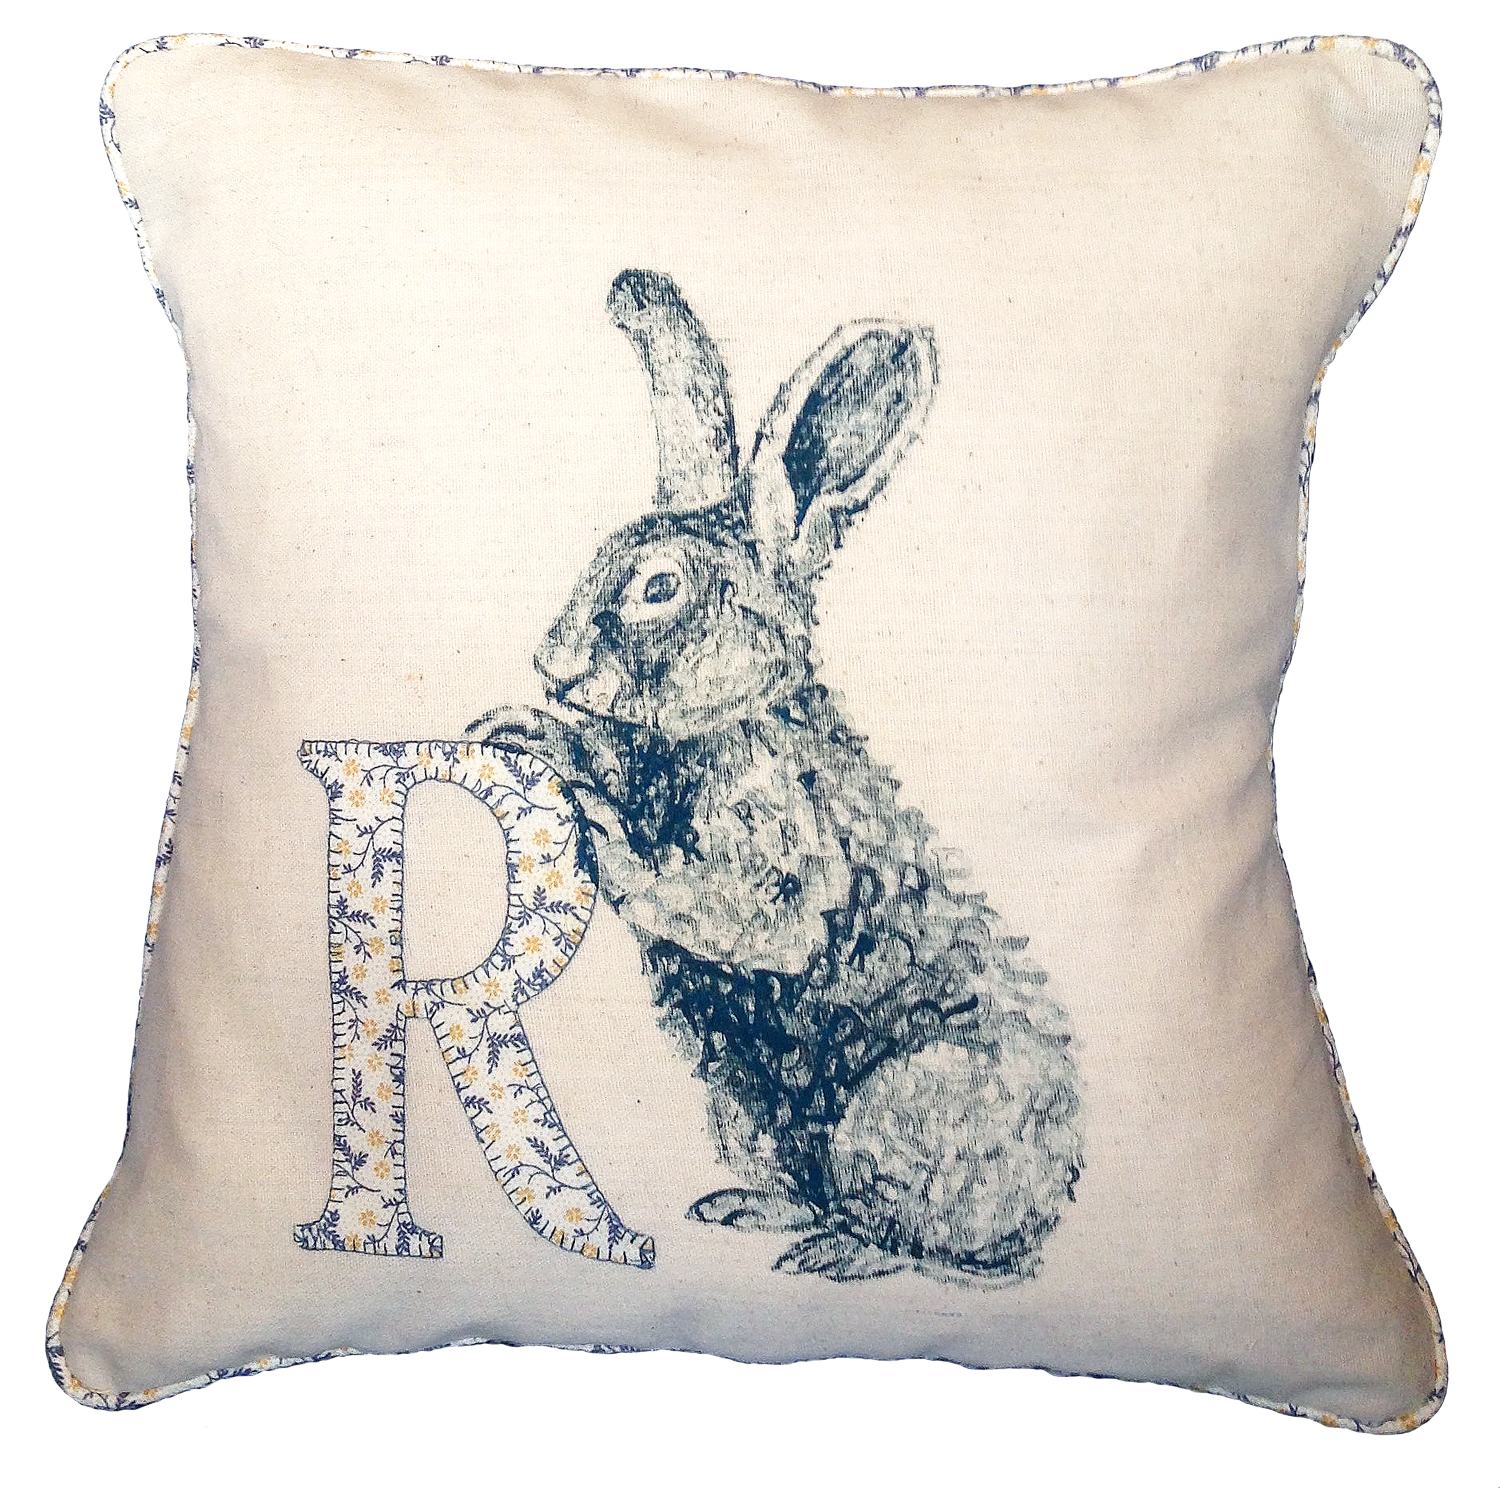 'R for Ruby/Rabbit', 2015, ink stamp, fabric ink on cotton piped cushion, 40 x 40 cm